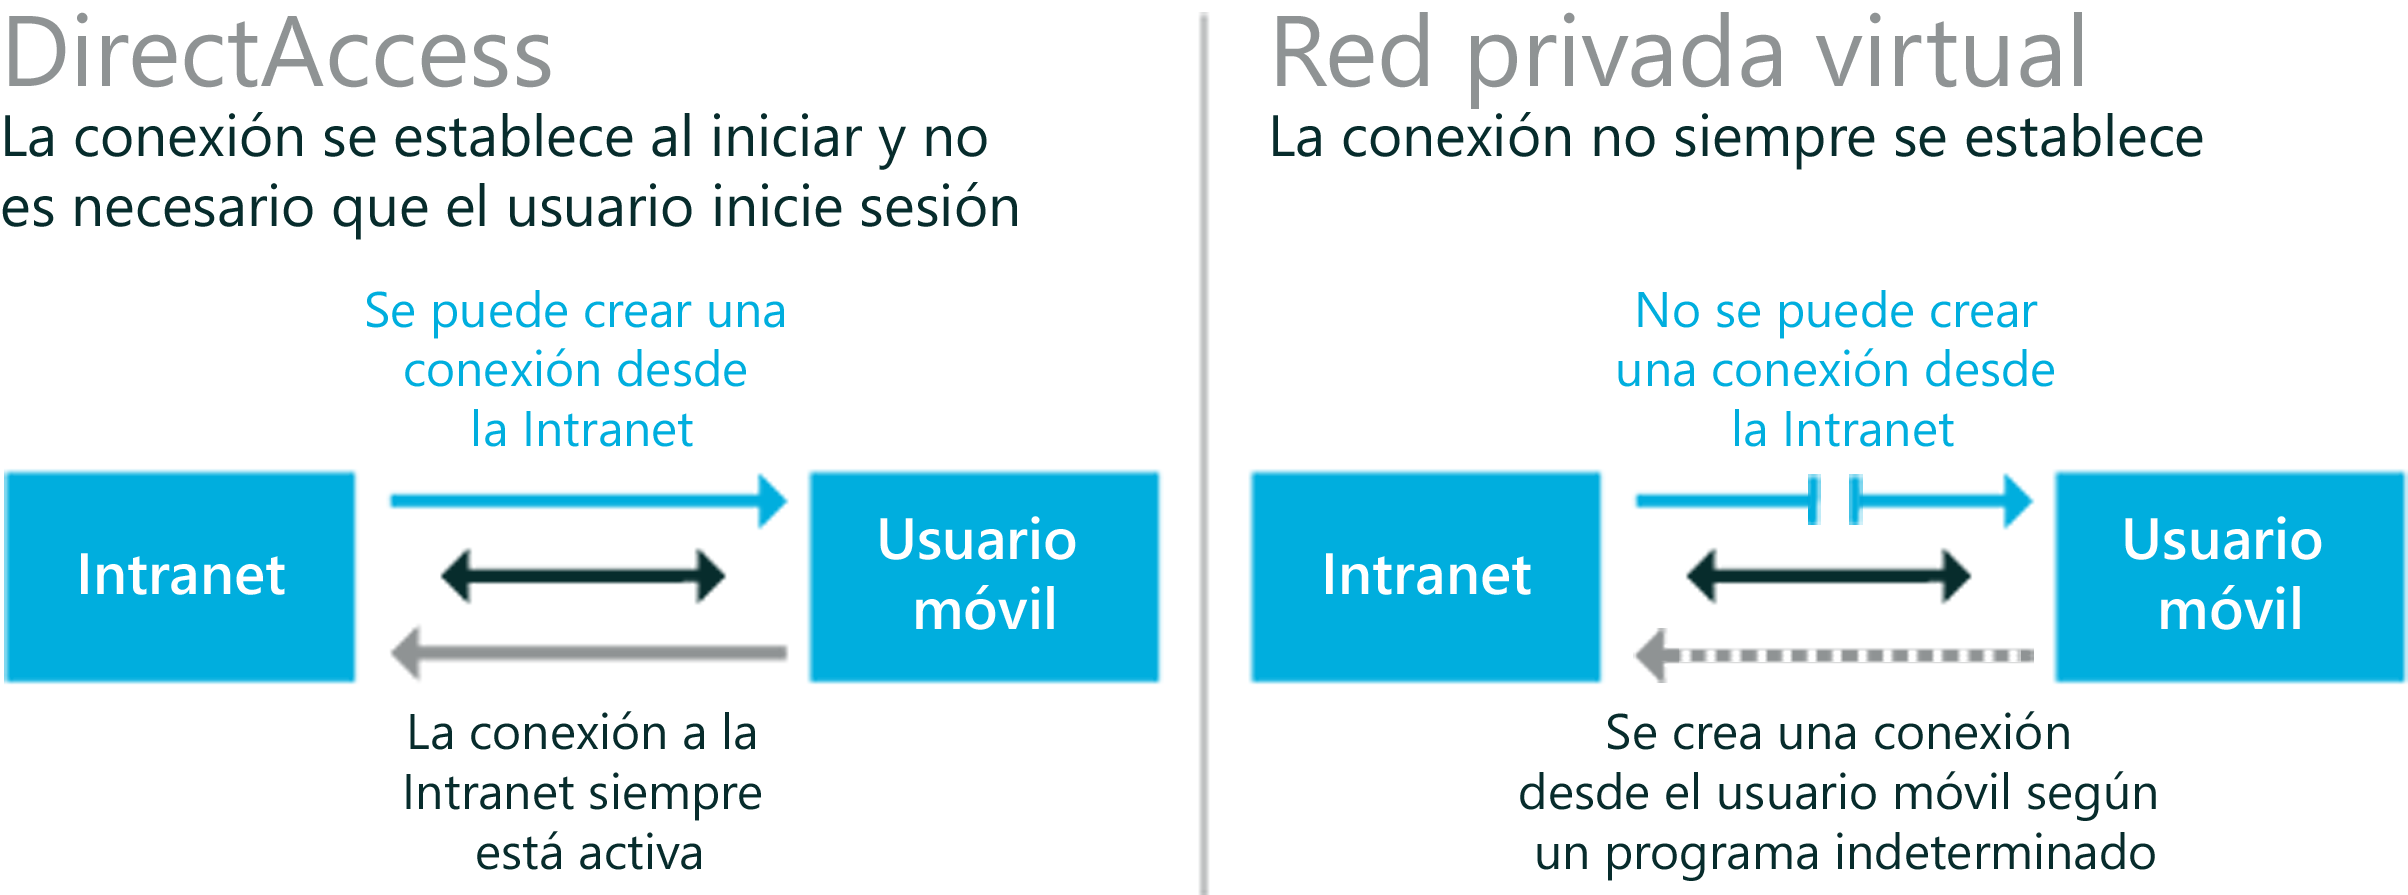 Con Windows 8 Enterprise y Windows Server 2012, DirectAccess es más simple de implementar y administrar.